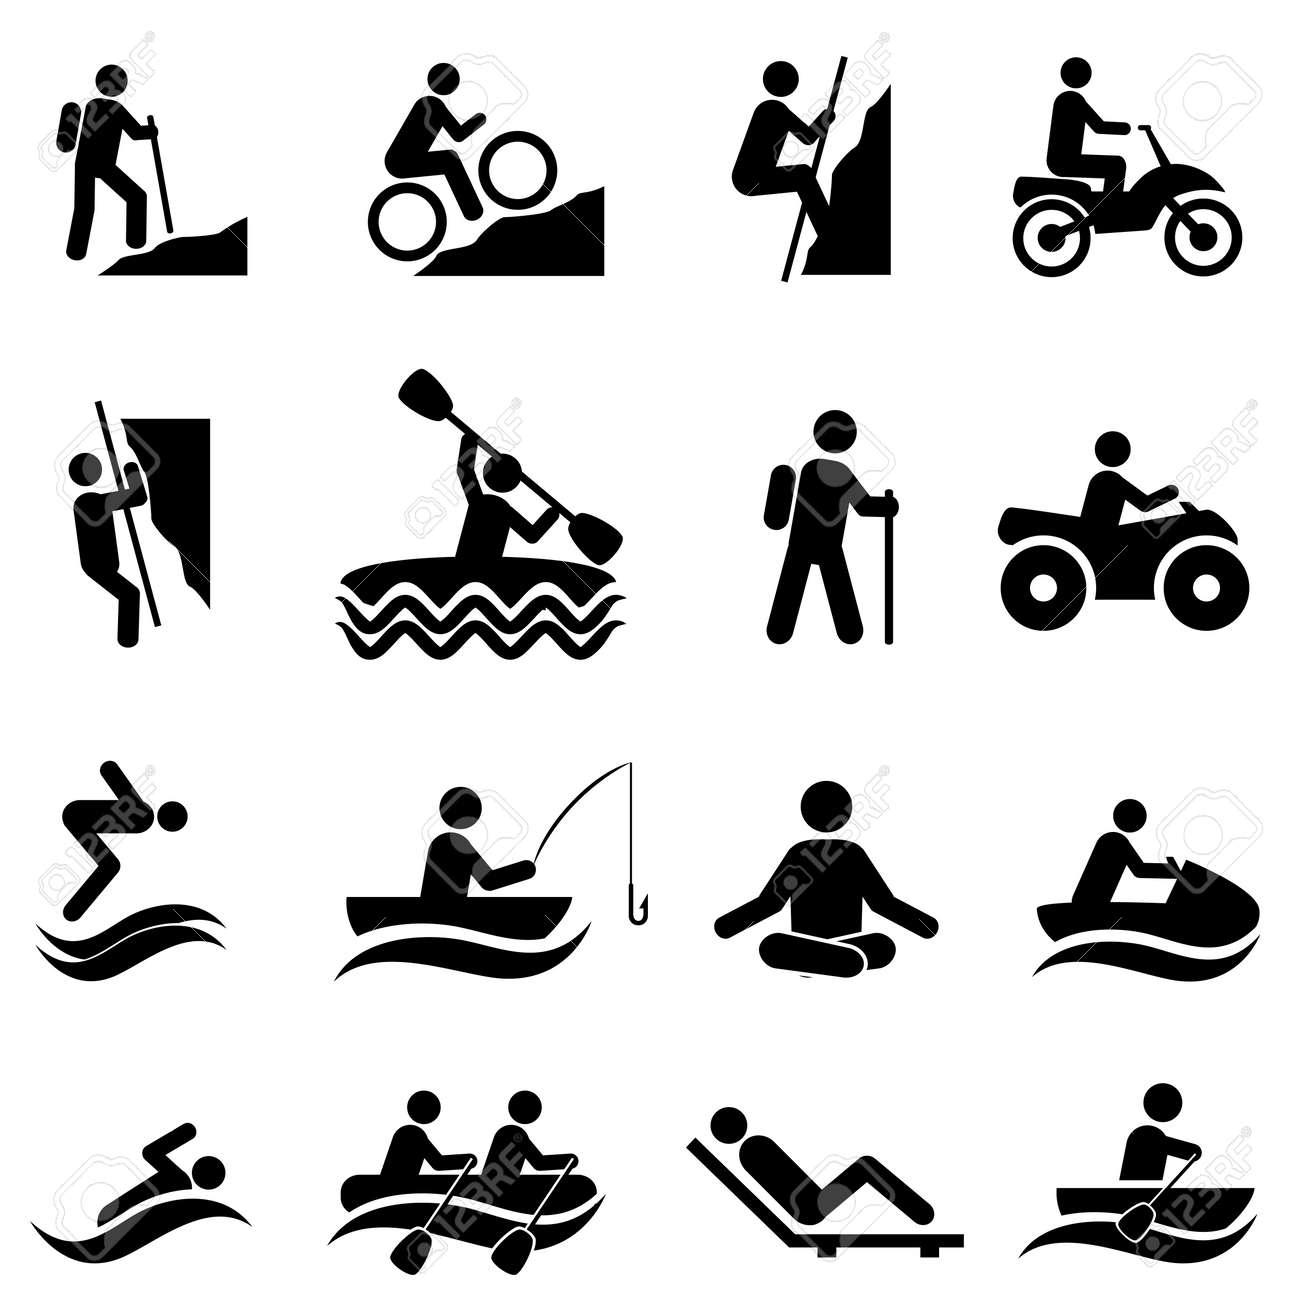 Leisure and outdoor recreational activities icon set - 70655869